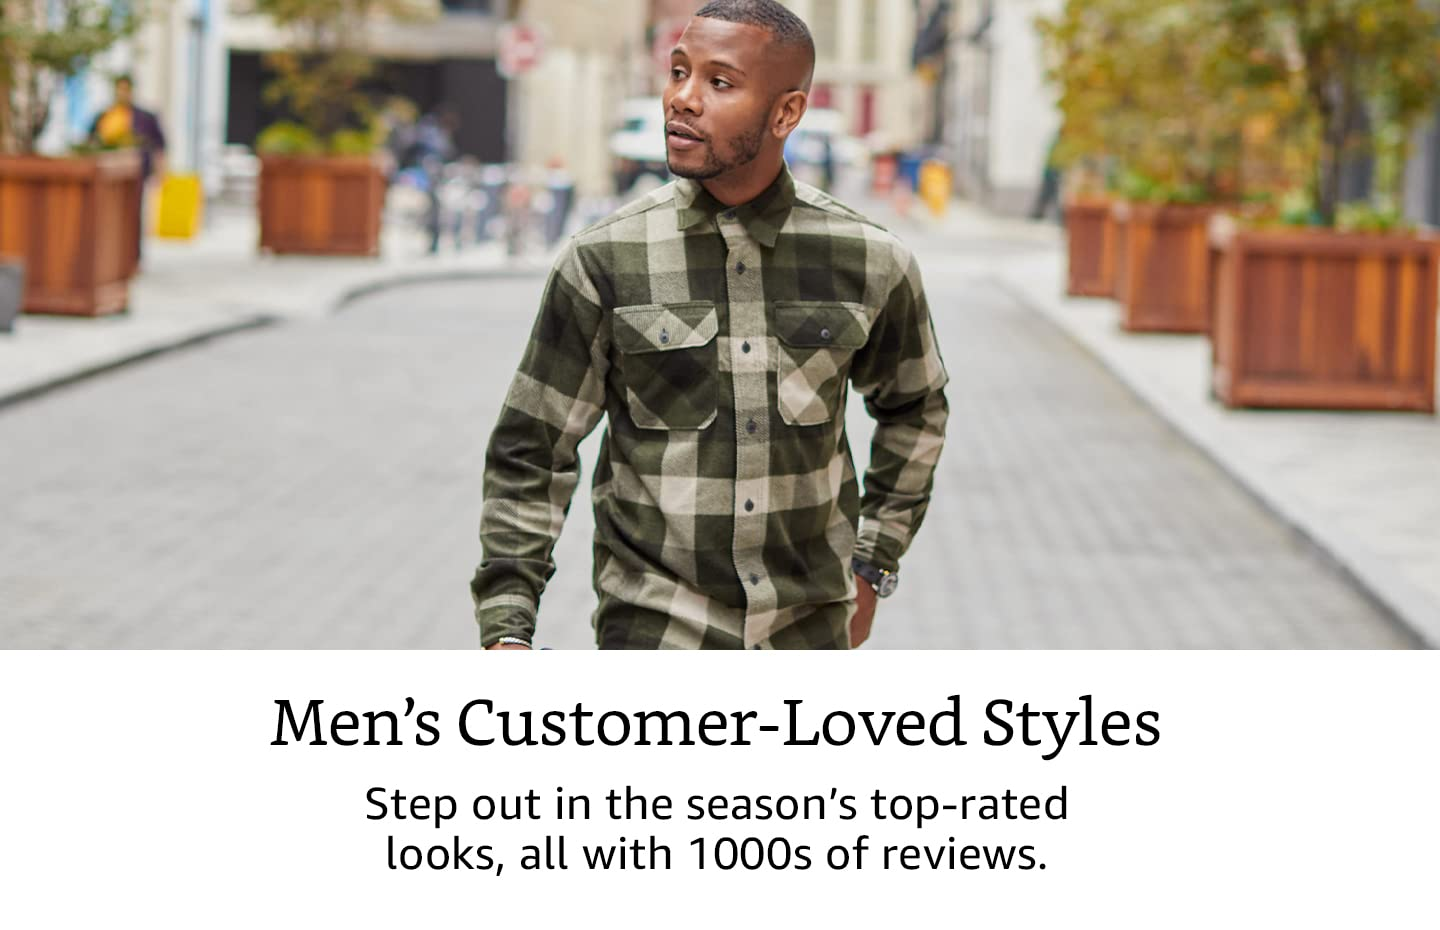 Men's Customer-Loved Styles